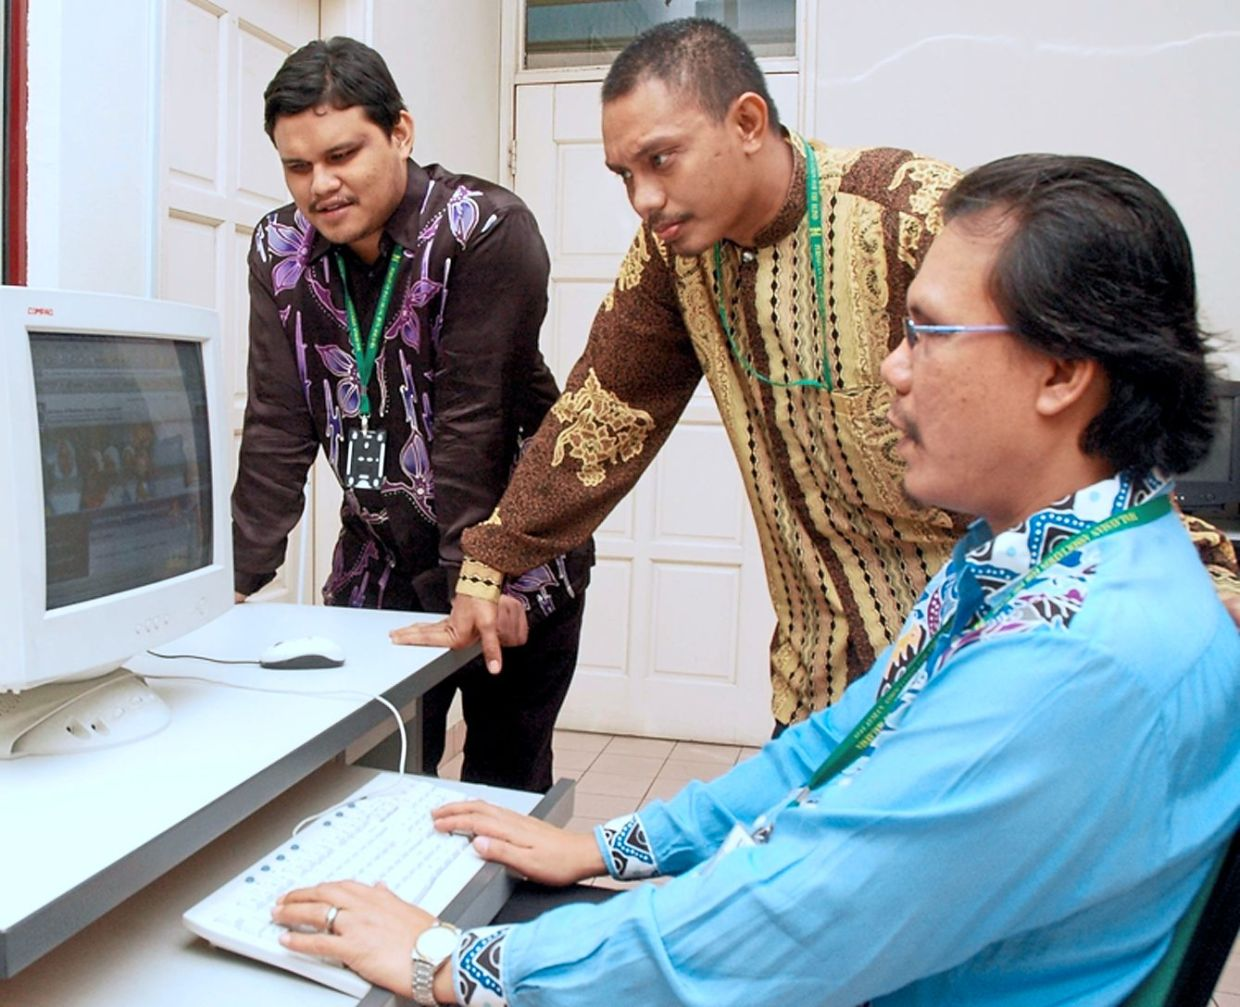 Useful tool: In this file photo taken before the Covid-19 pandemic, Silatulrahim demonstrates how to use a website that is accessible to visually impaired persons.